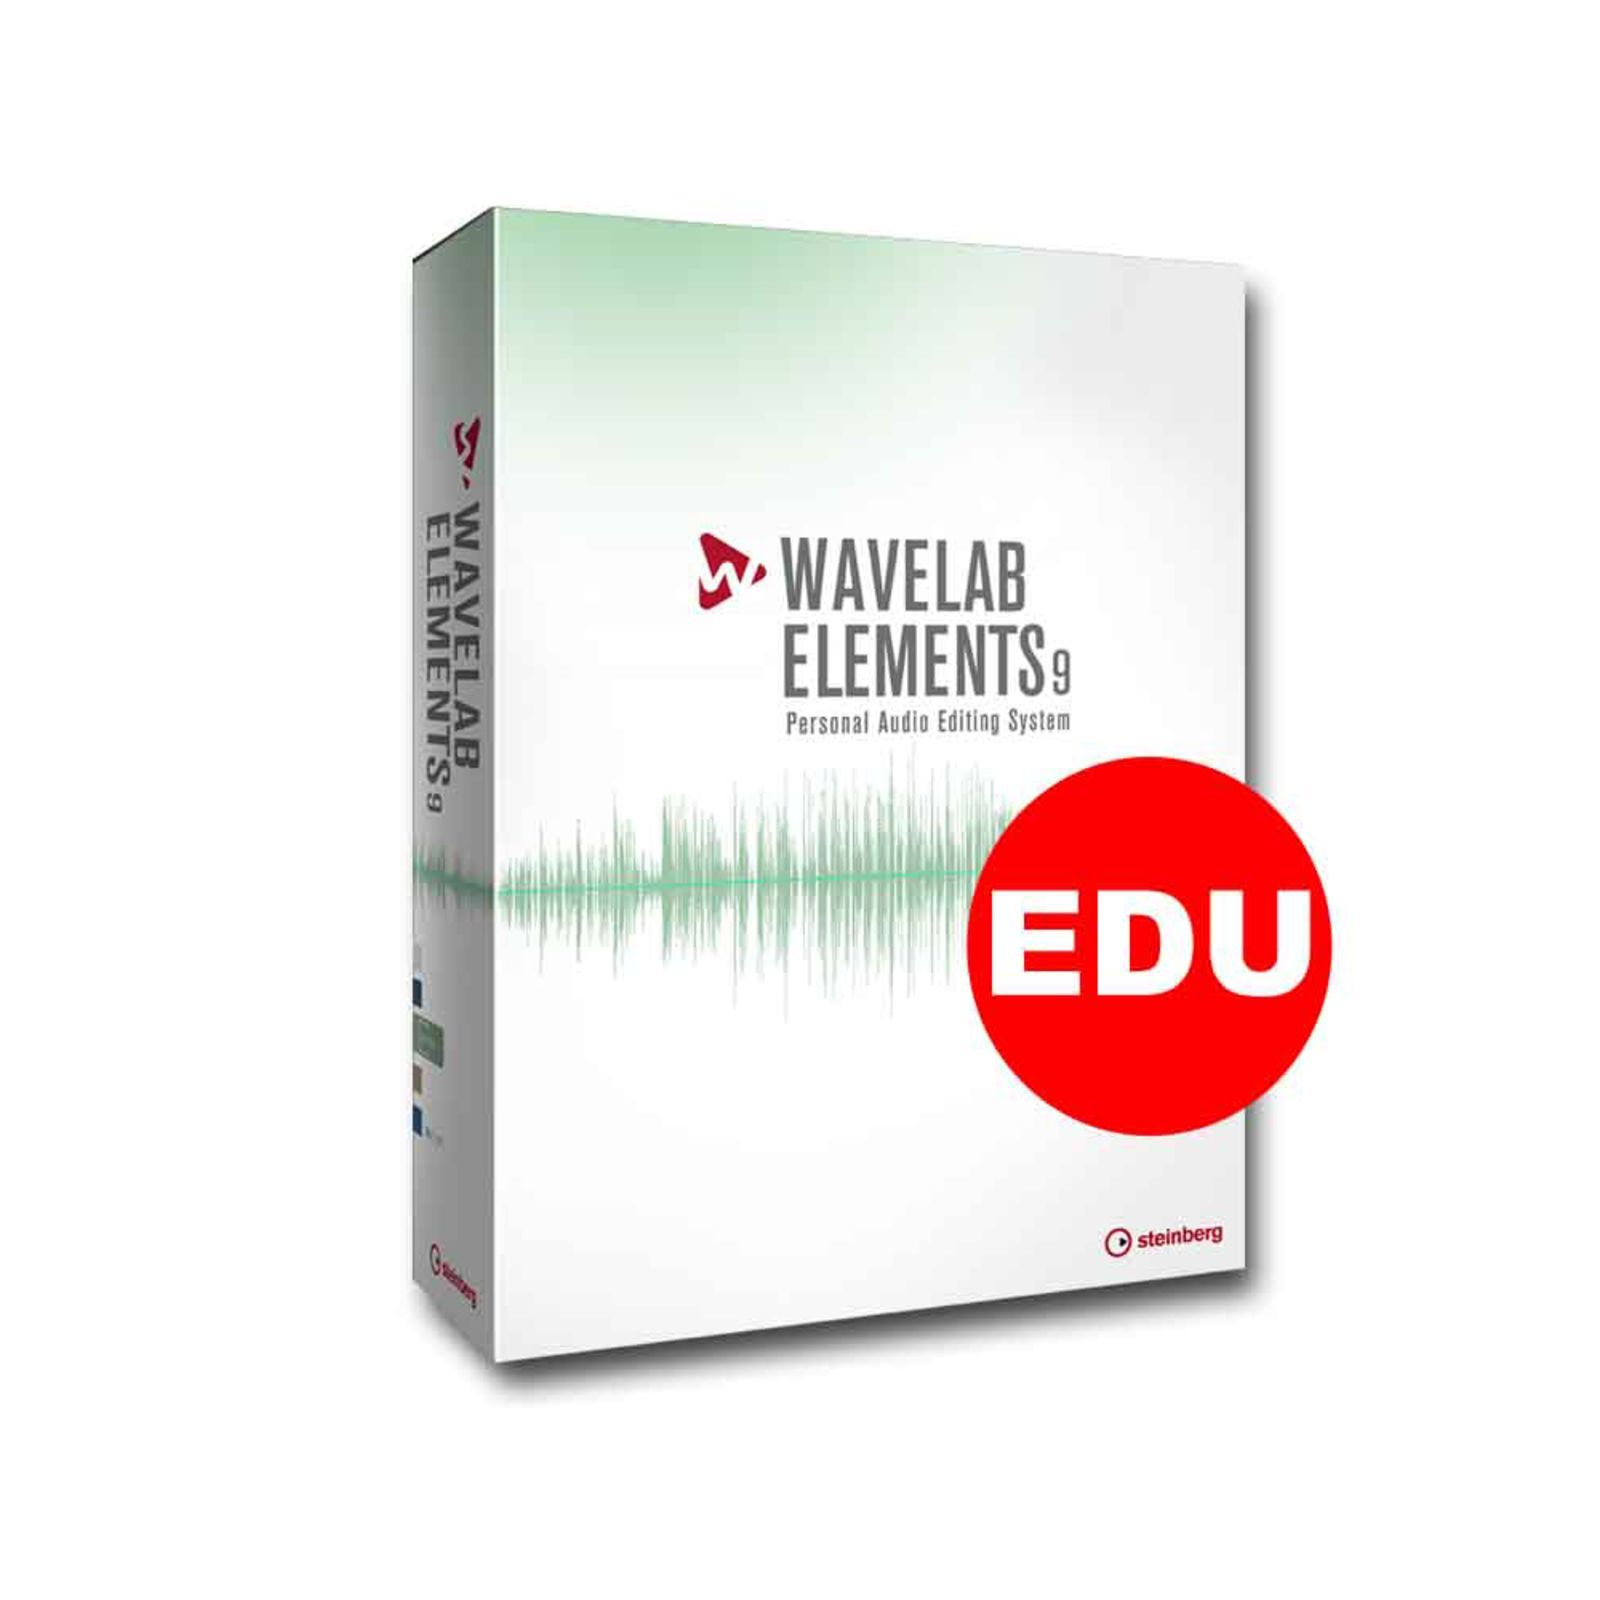 Steinberg Wavelab Elements 9.5 EDU Produktbillede